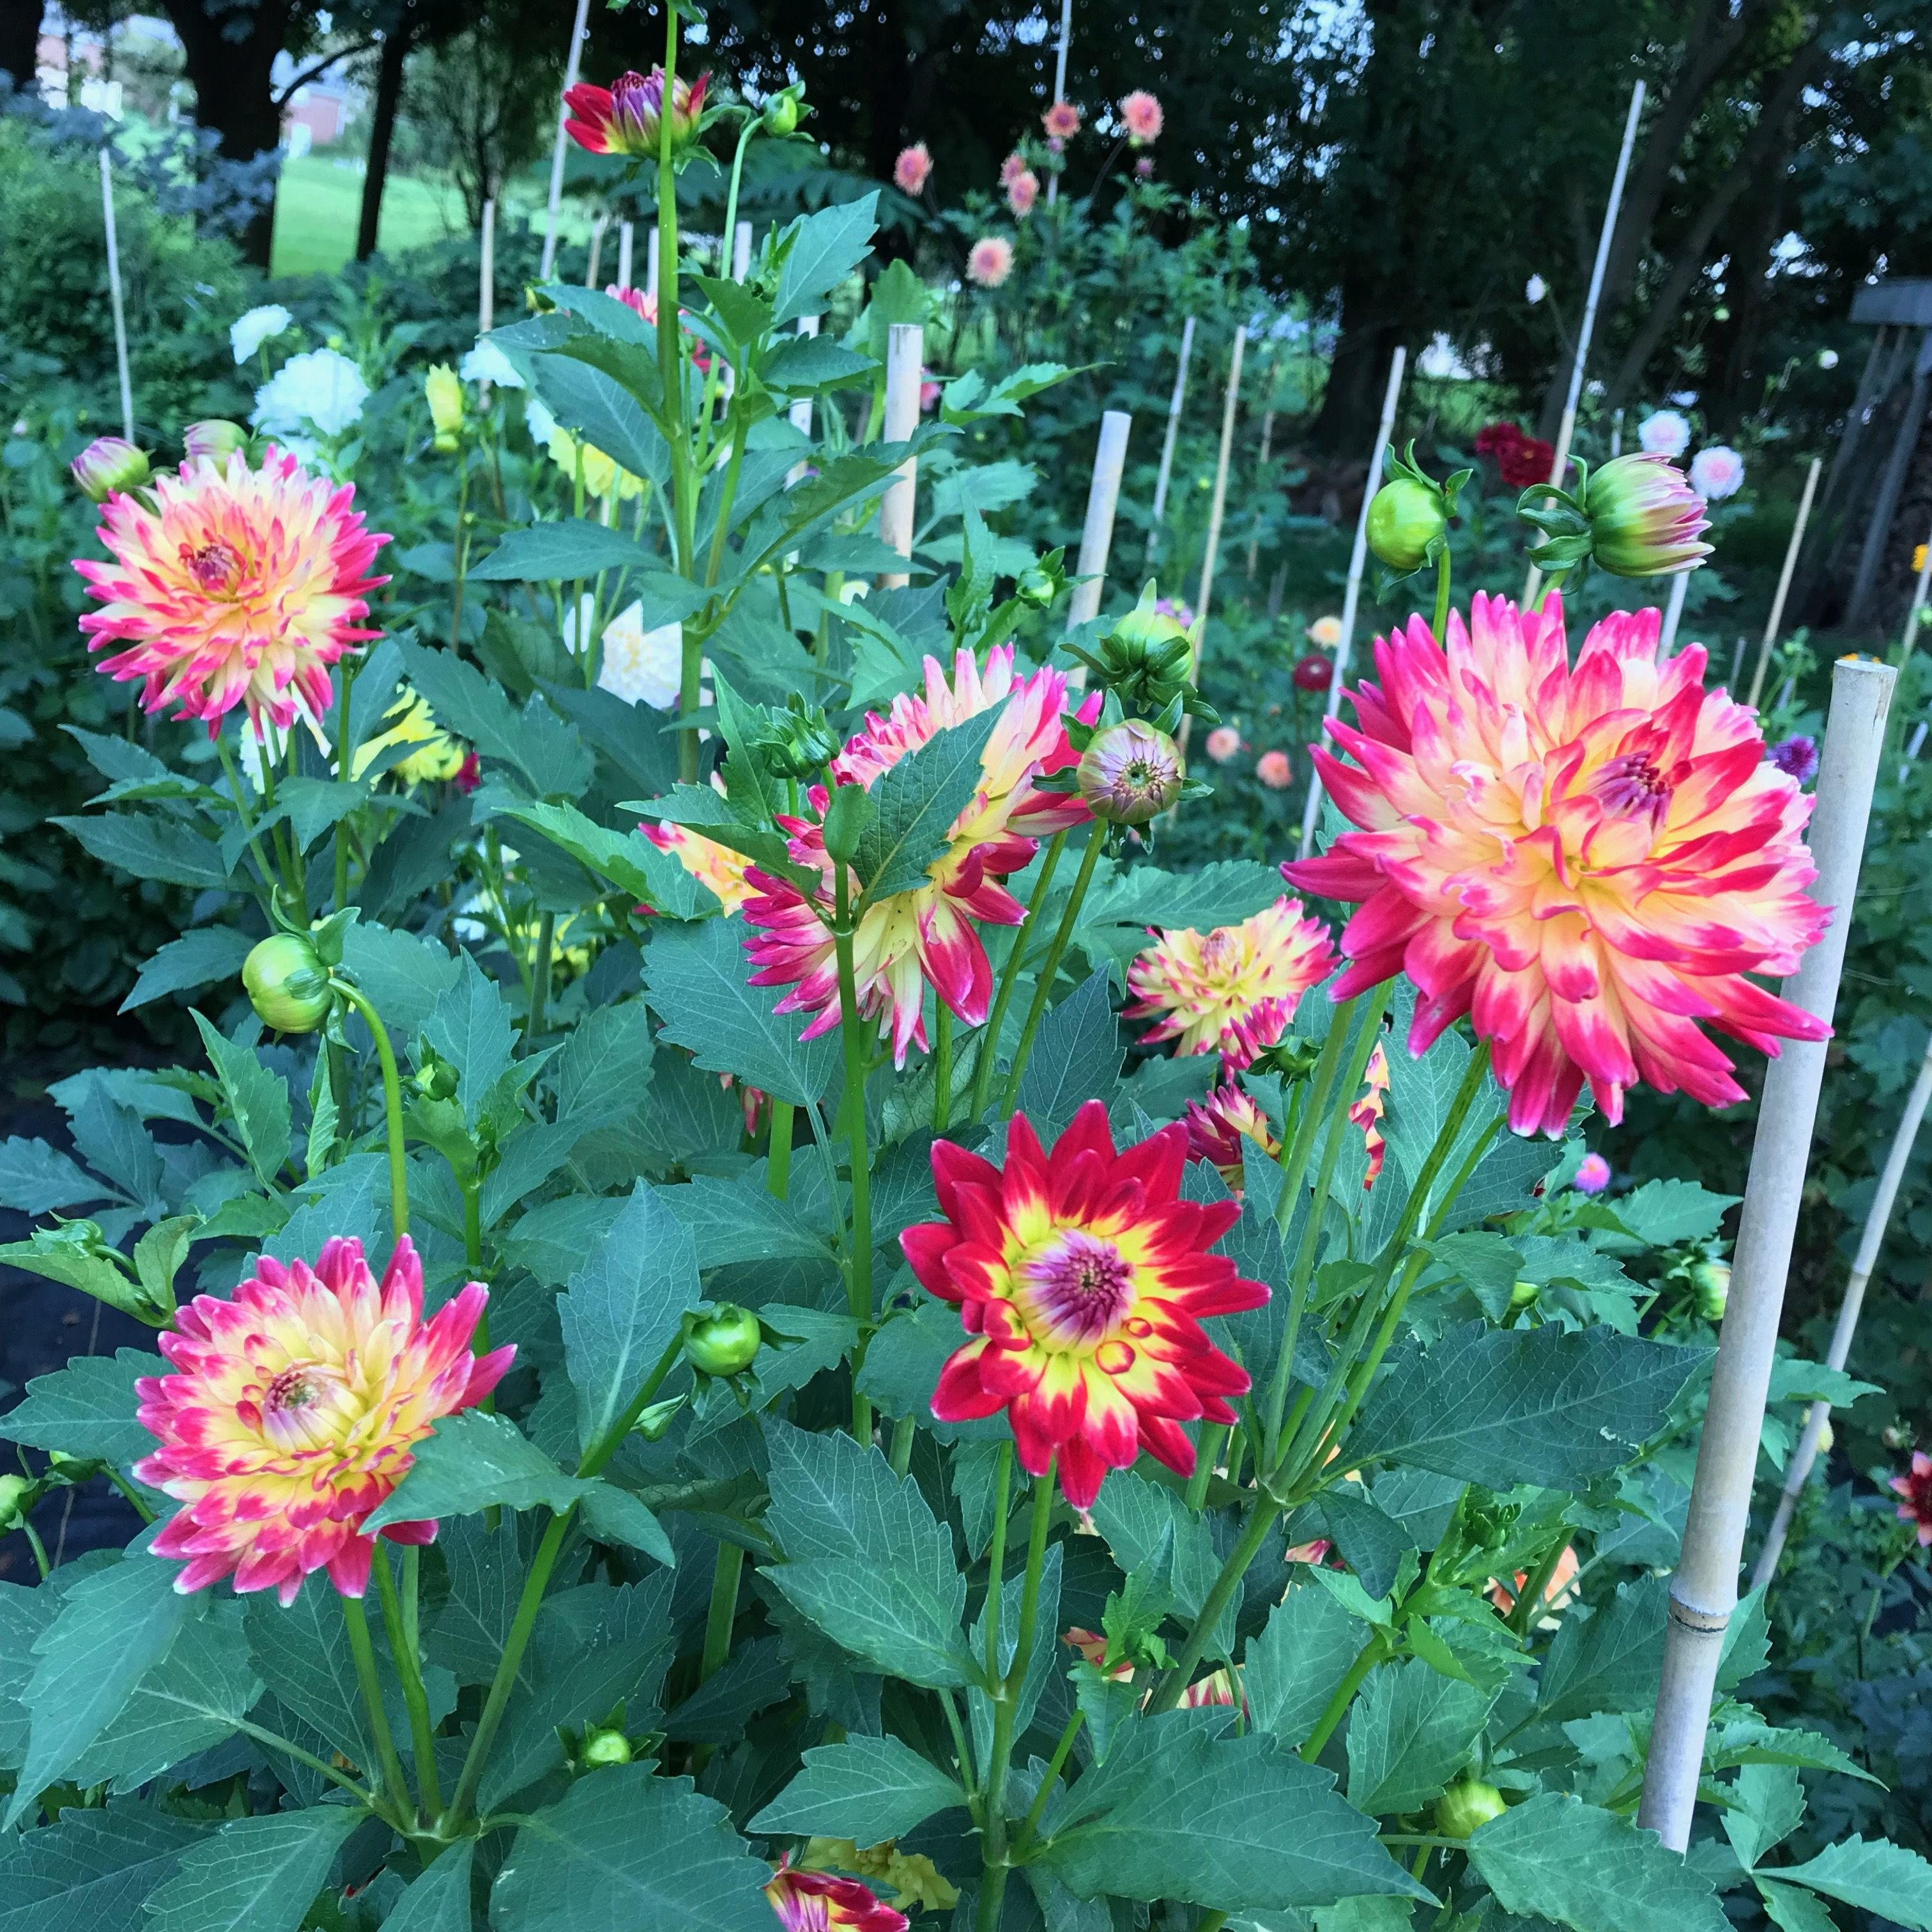 Wildcat Dahlia So Varied And Fun To Look At Each Flower Dahlias Garden Dahlia Flower Dahlia